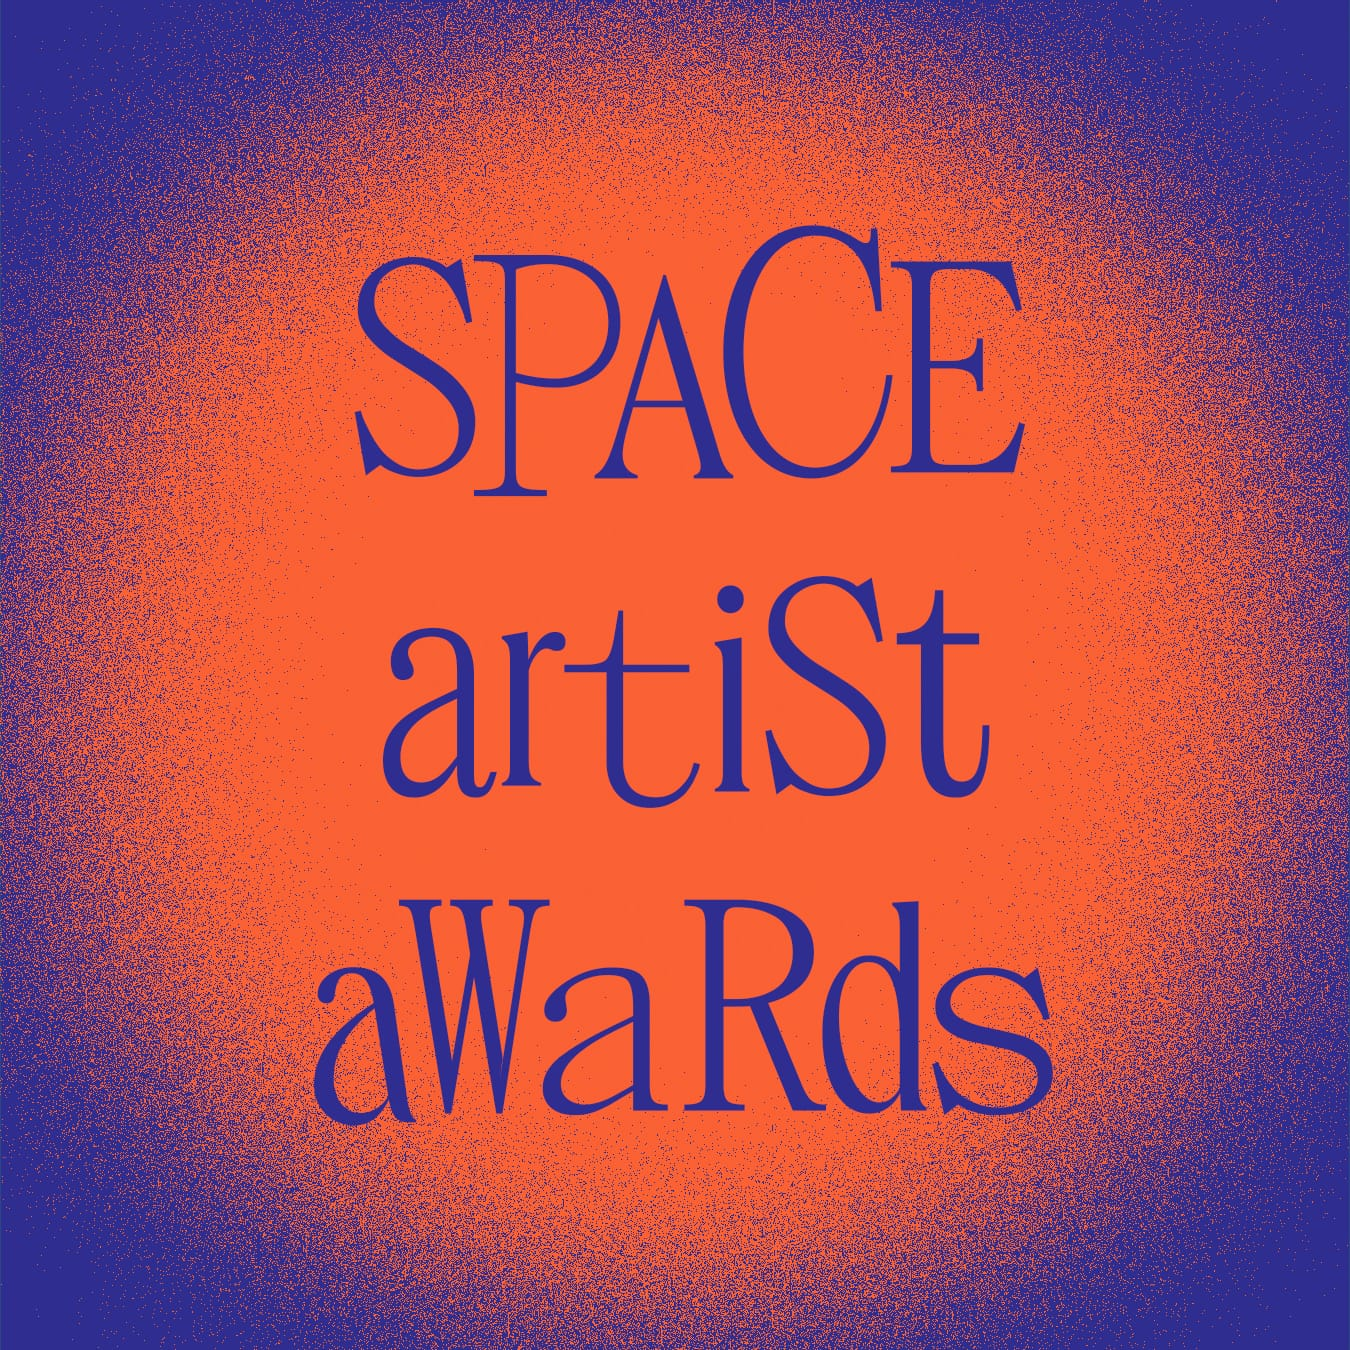 SPACE Artist Awards 2020